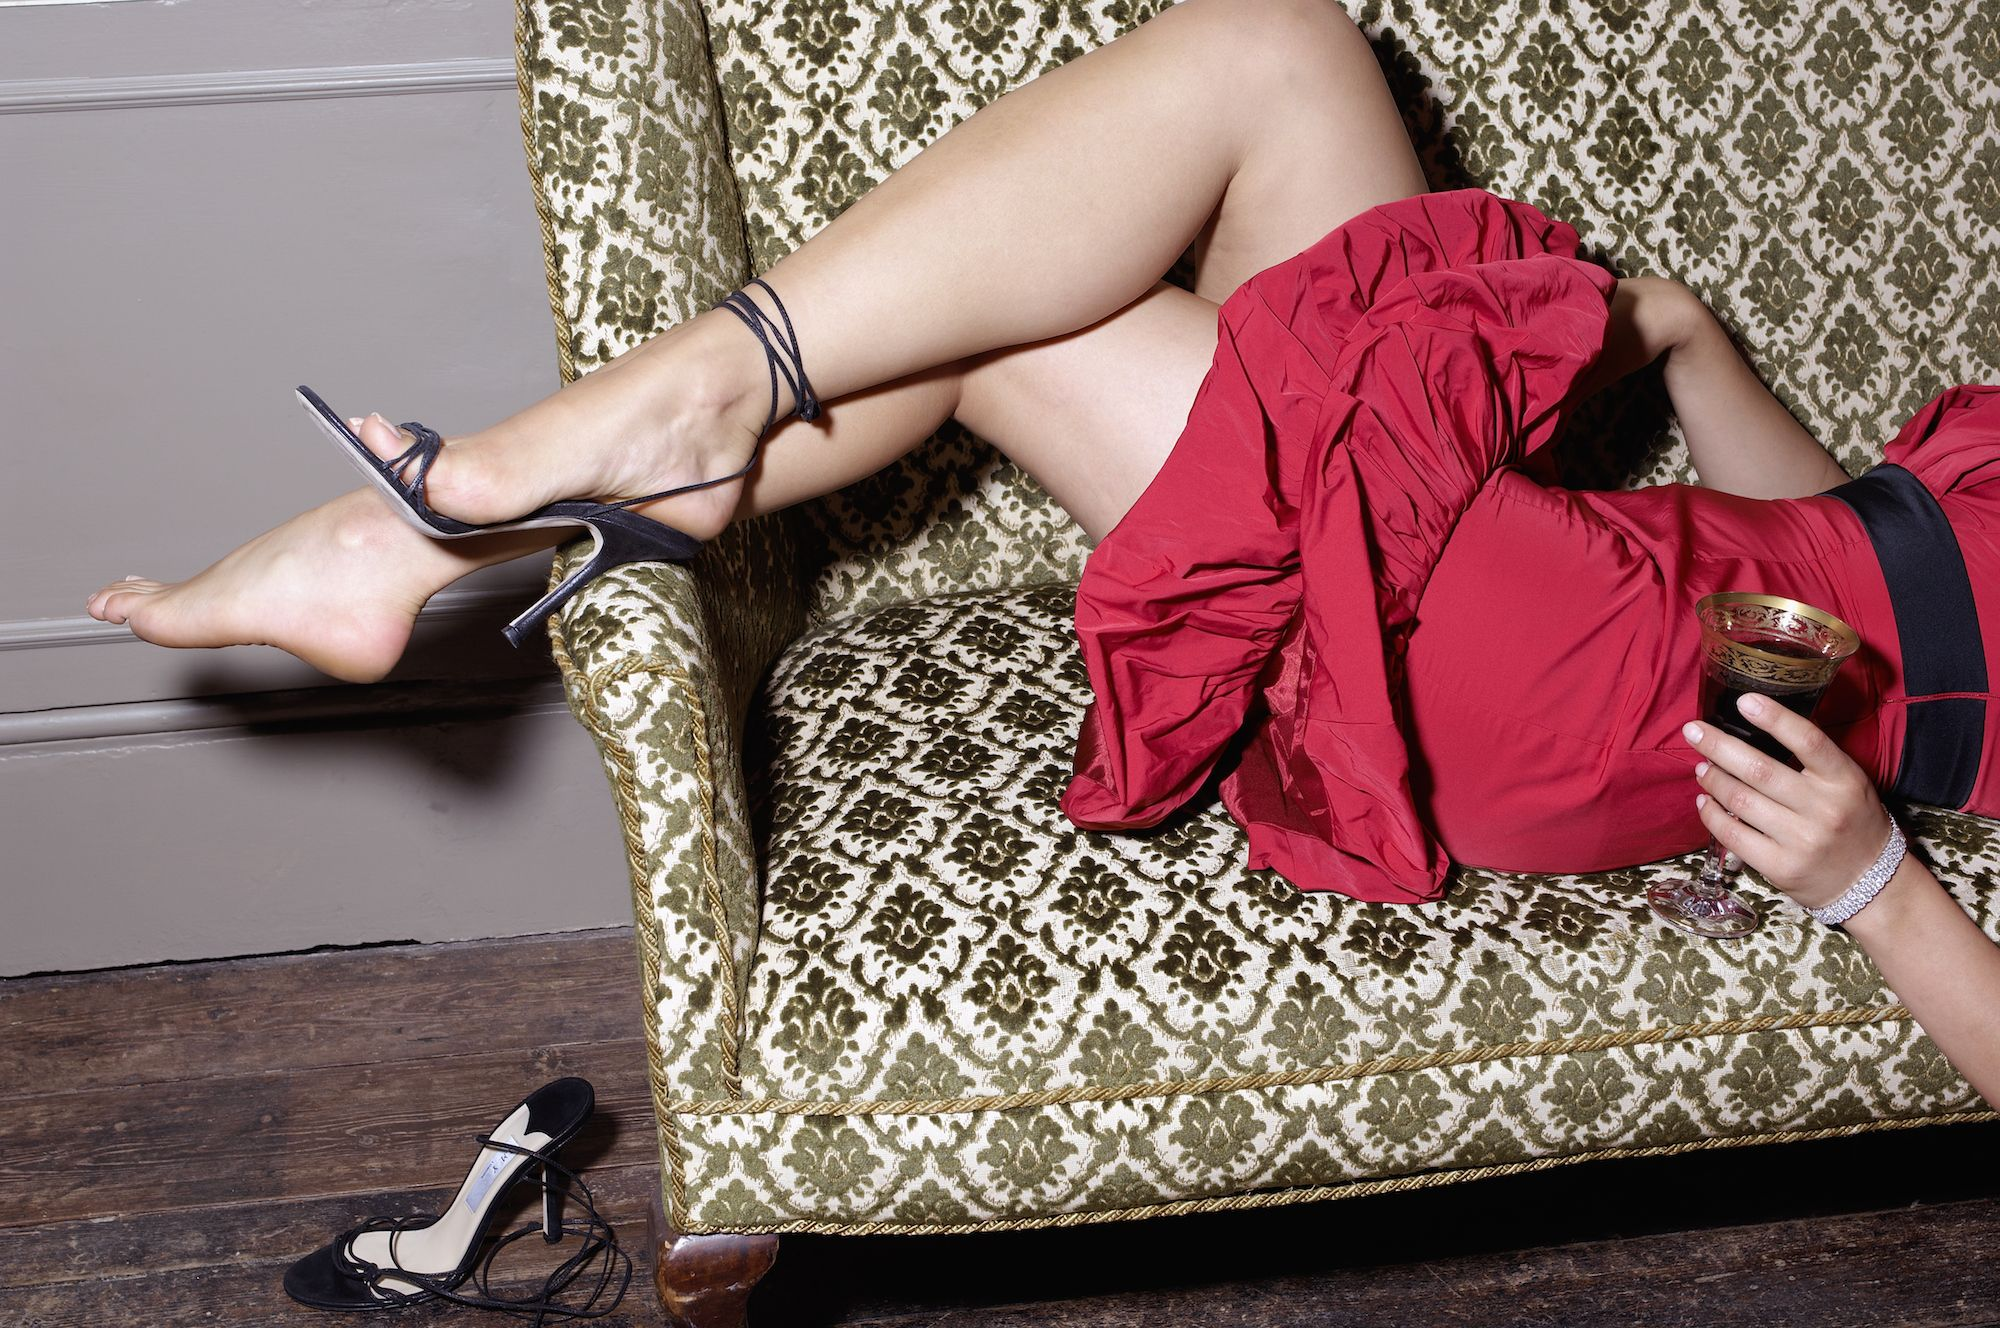 Foot Tease Story photo 15